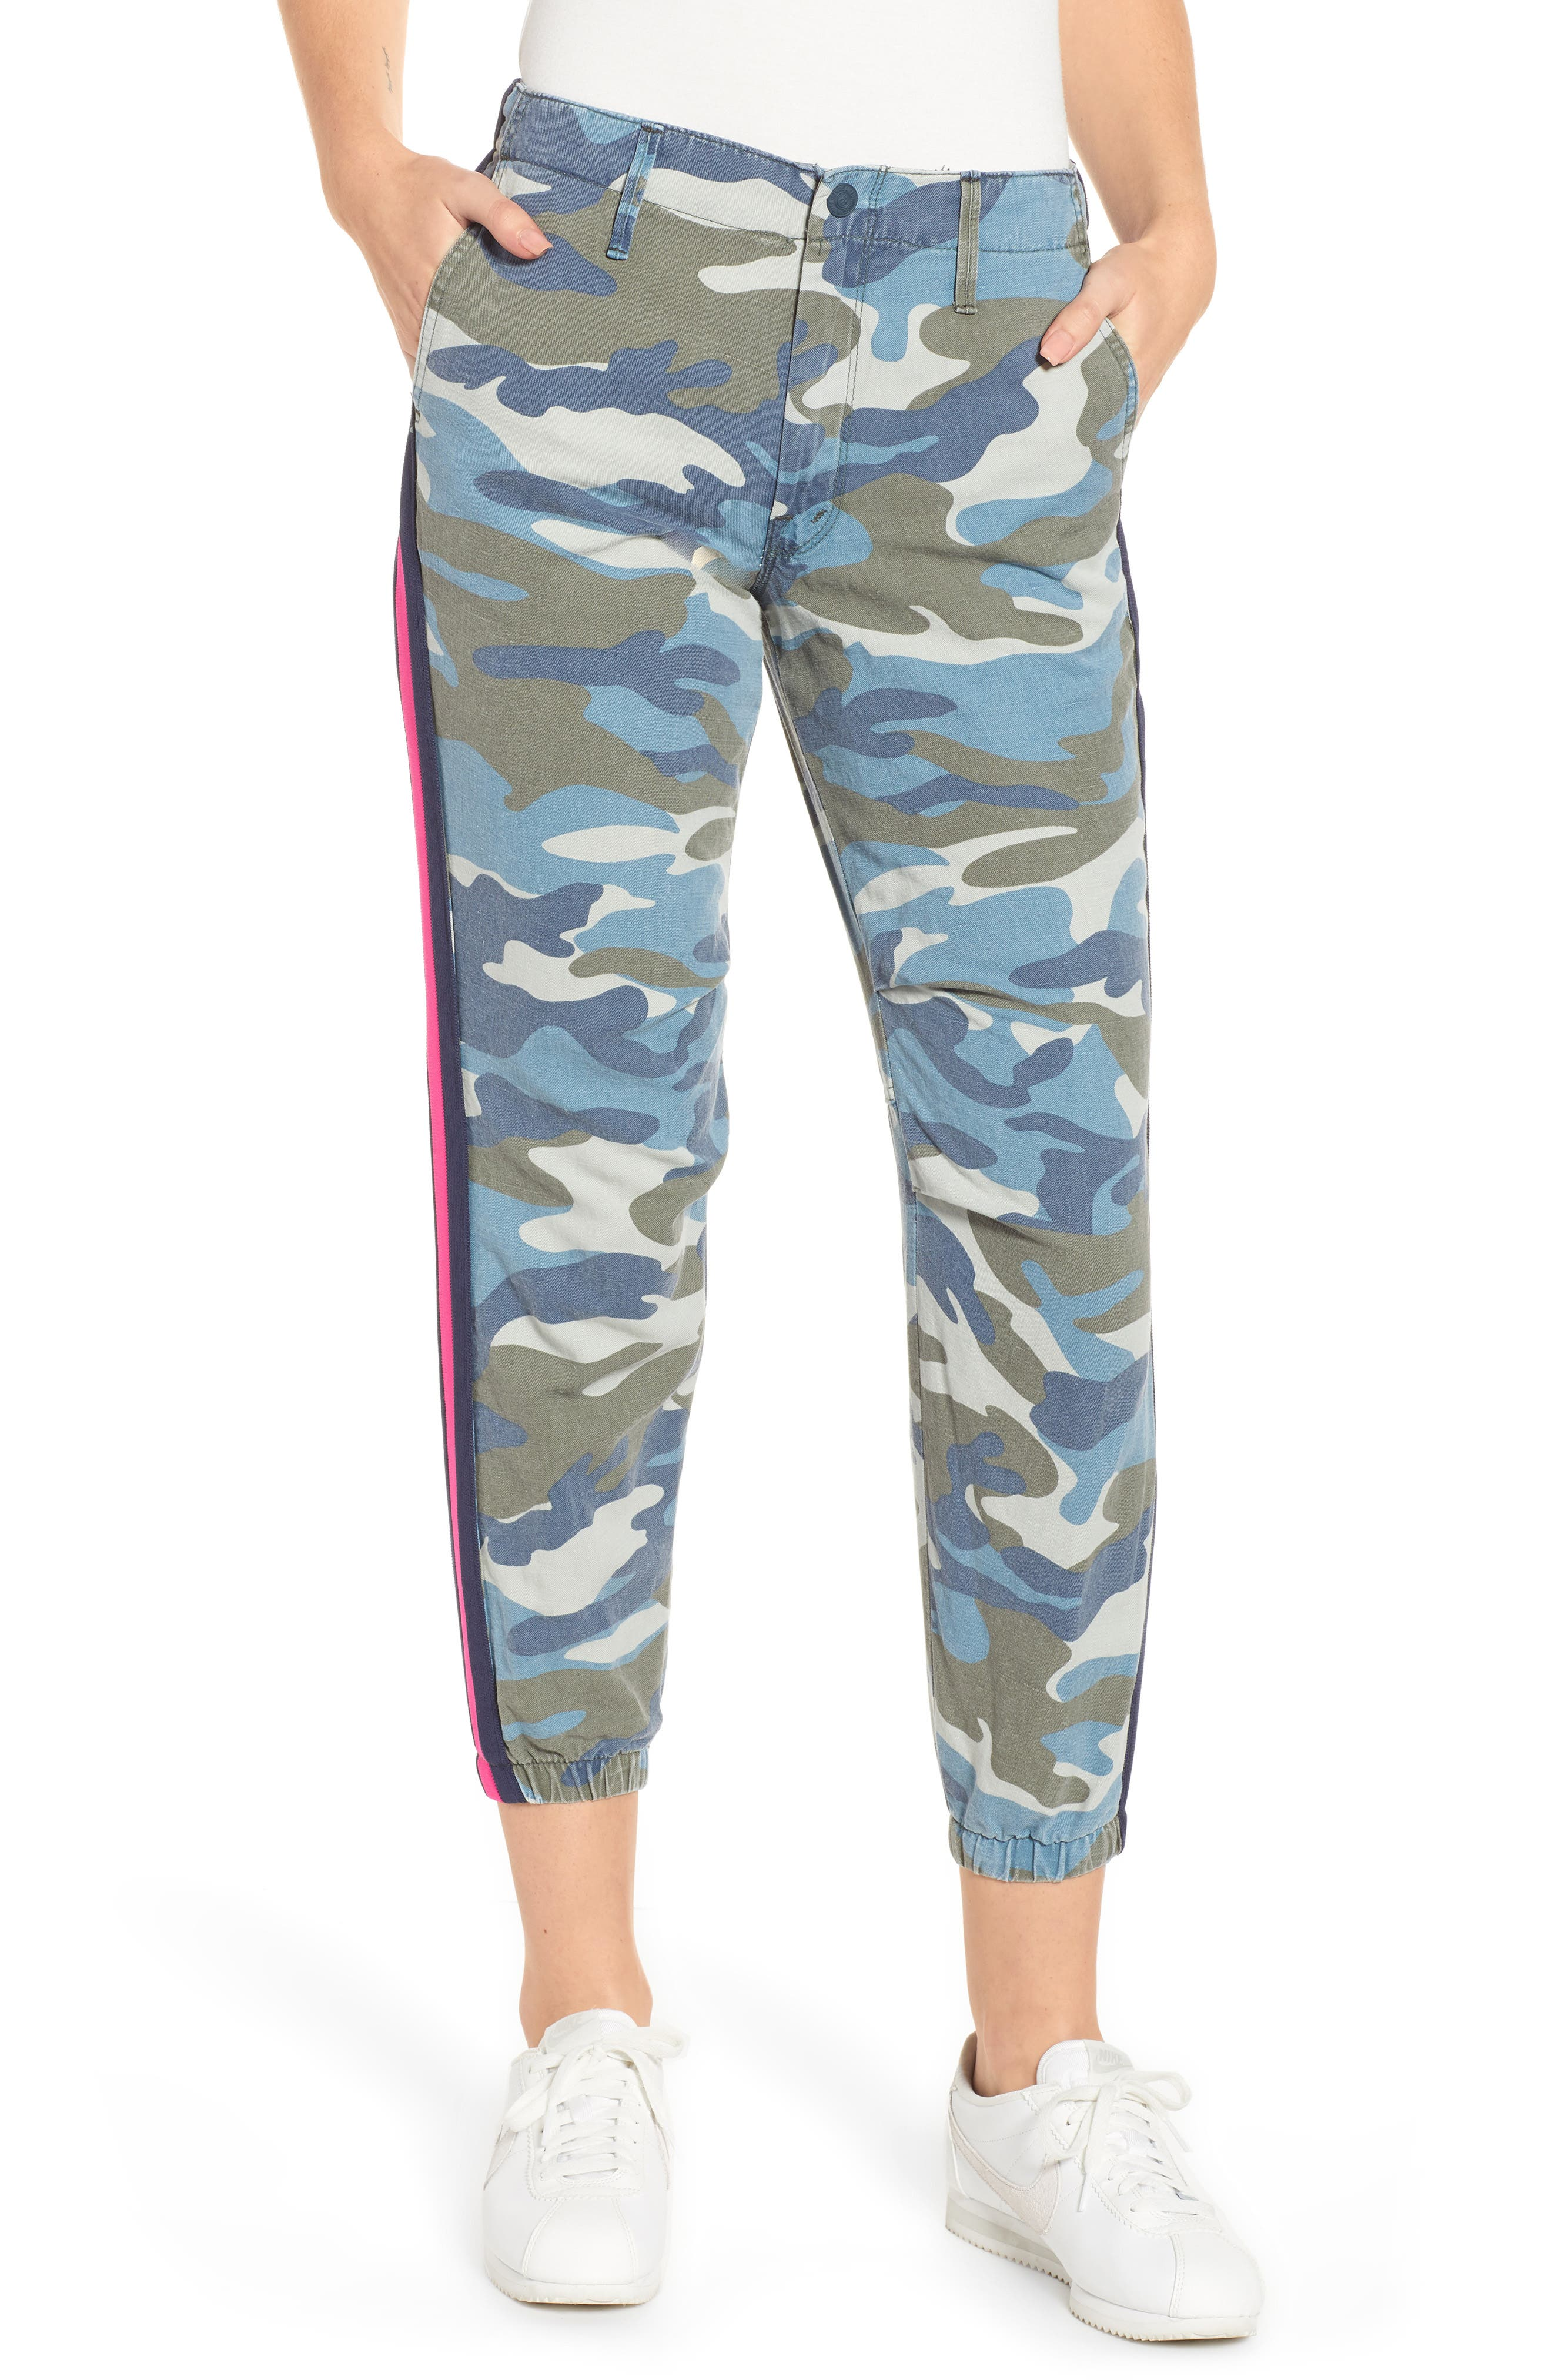 Misfit Camo-Print Racer Stripe Cropped Pants in Army Blue Camo